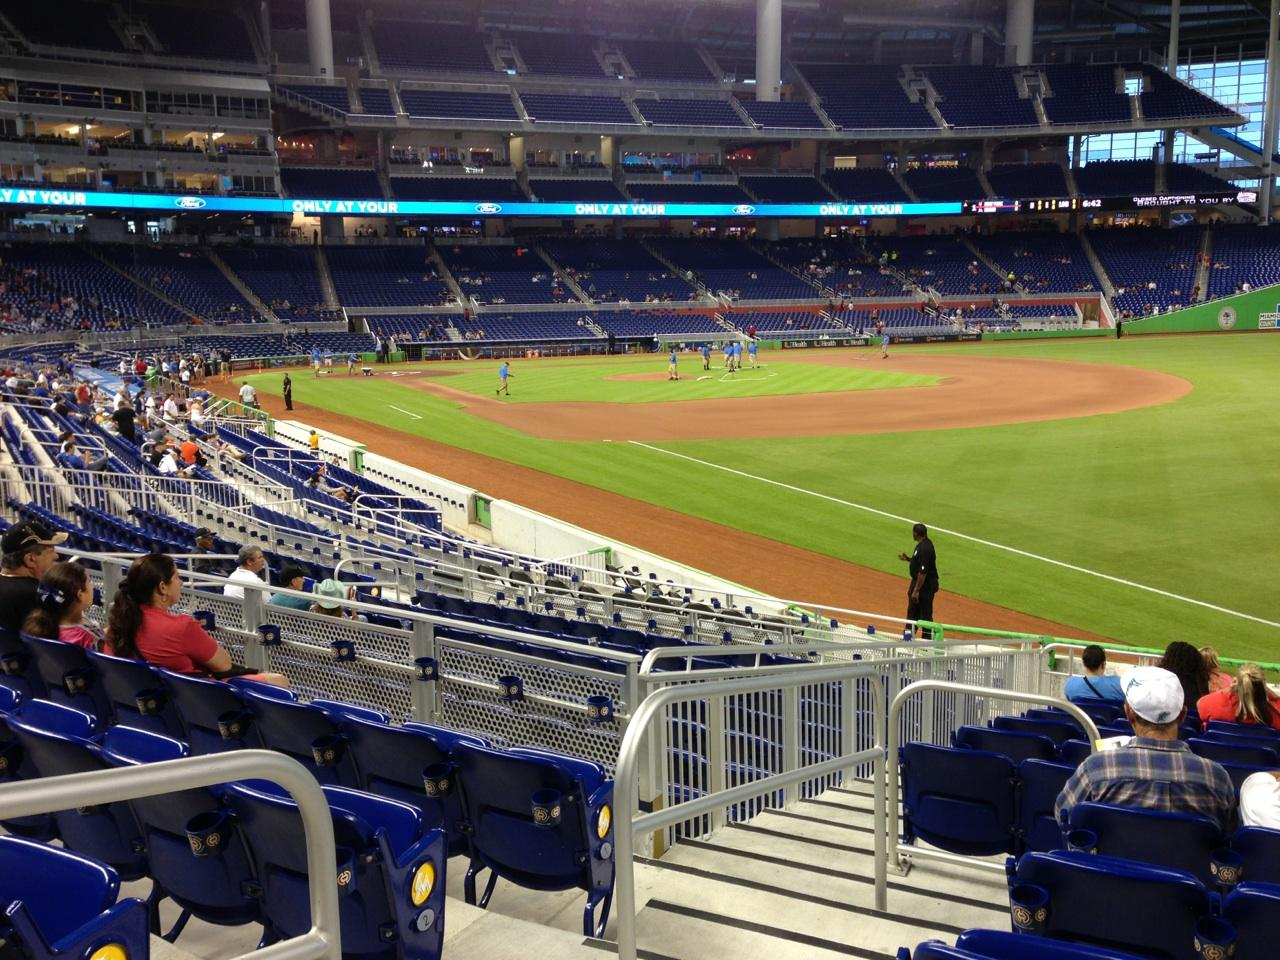 Marlins Park Section 3 Row 5 Seat 14